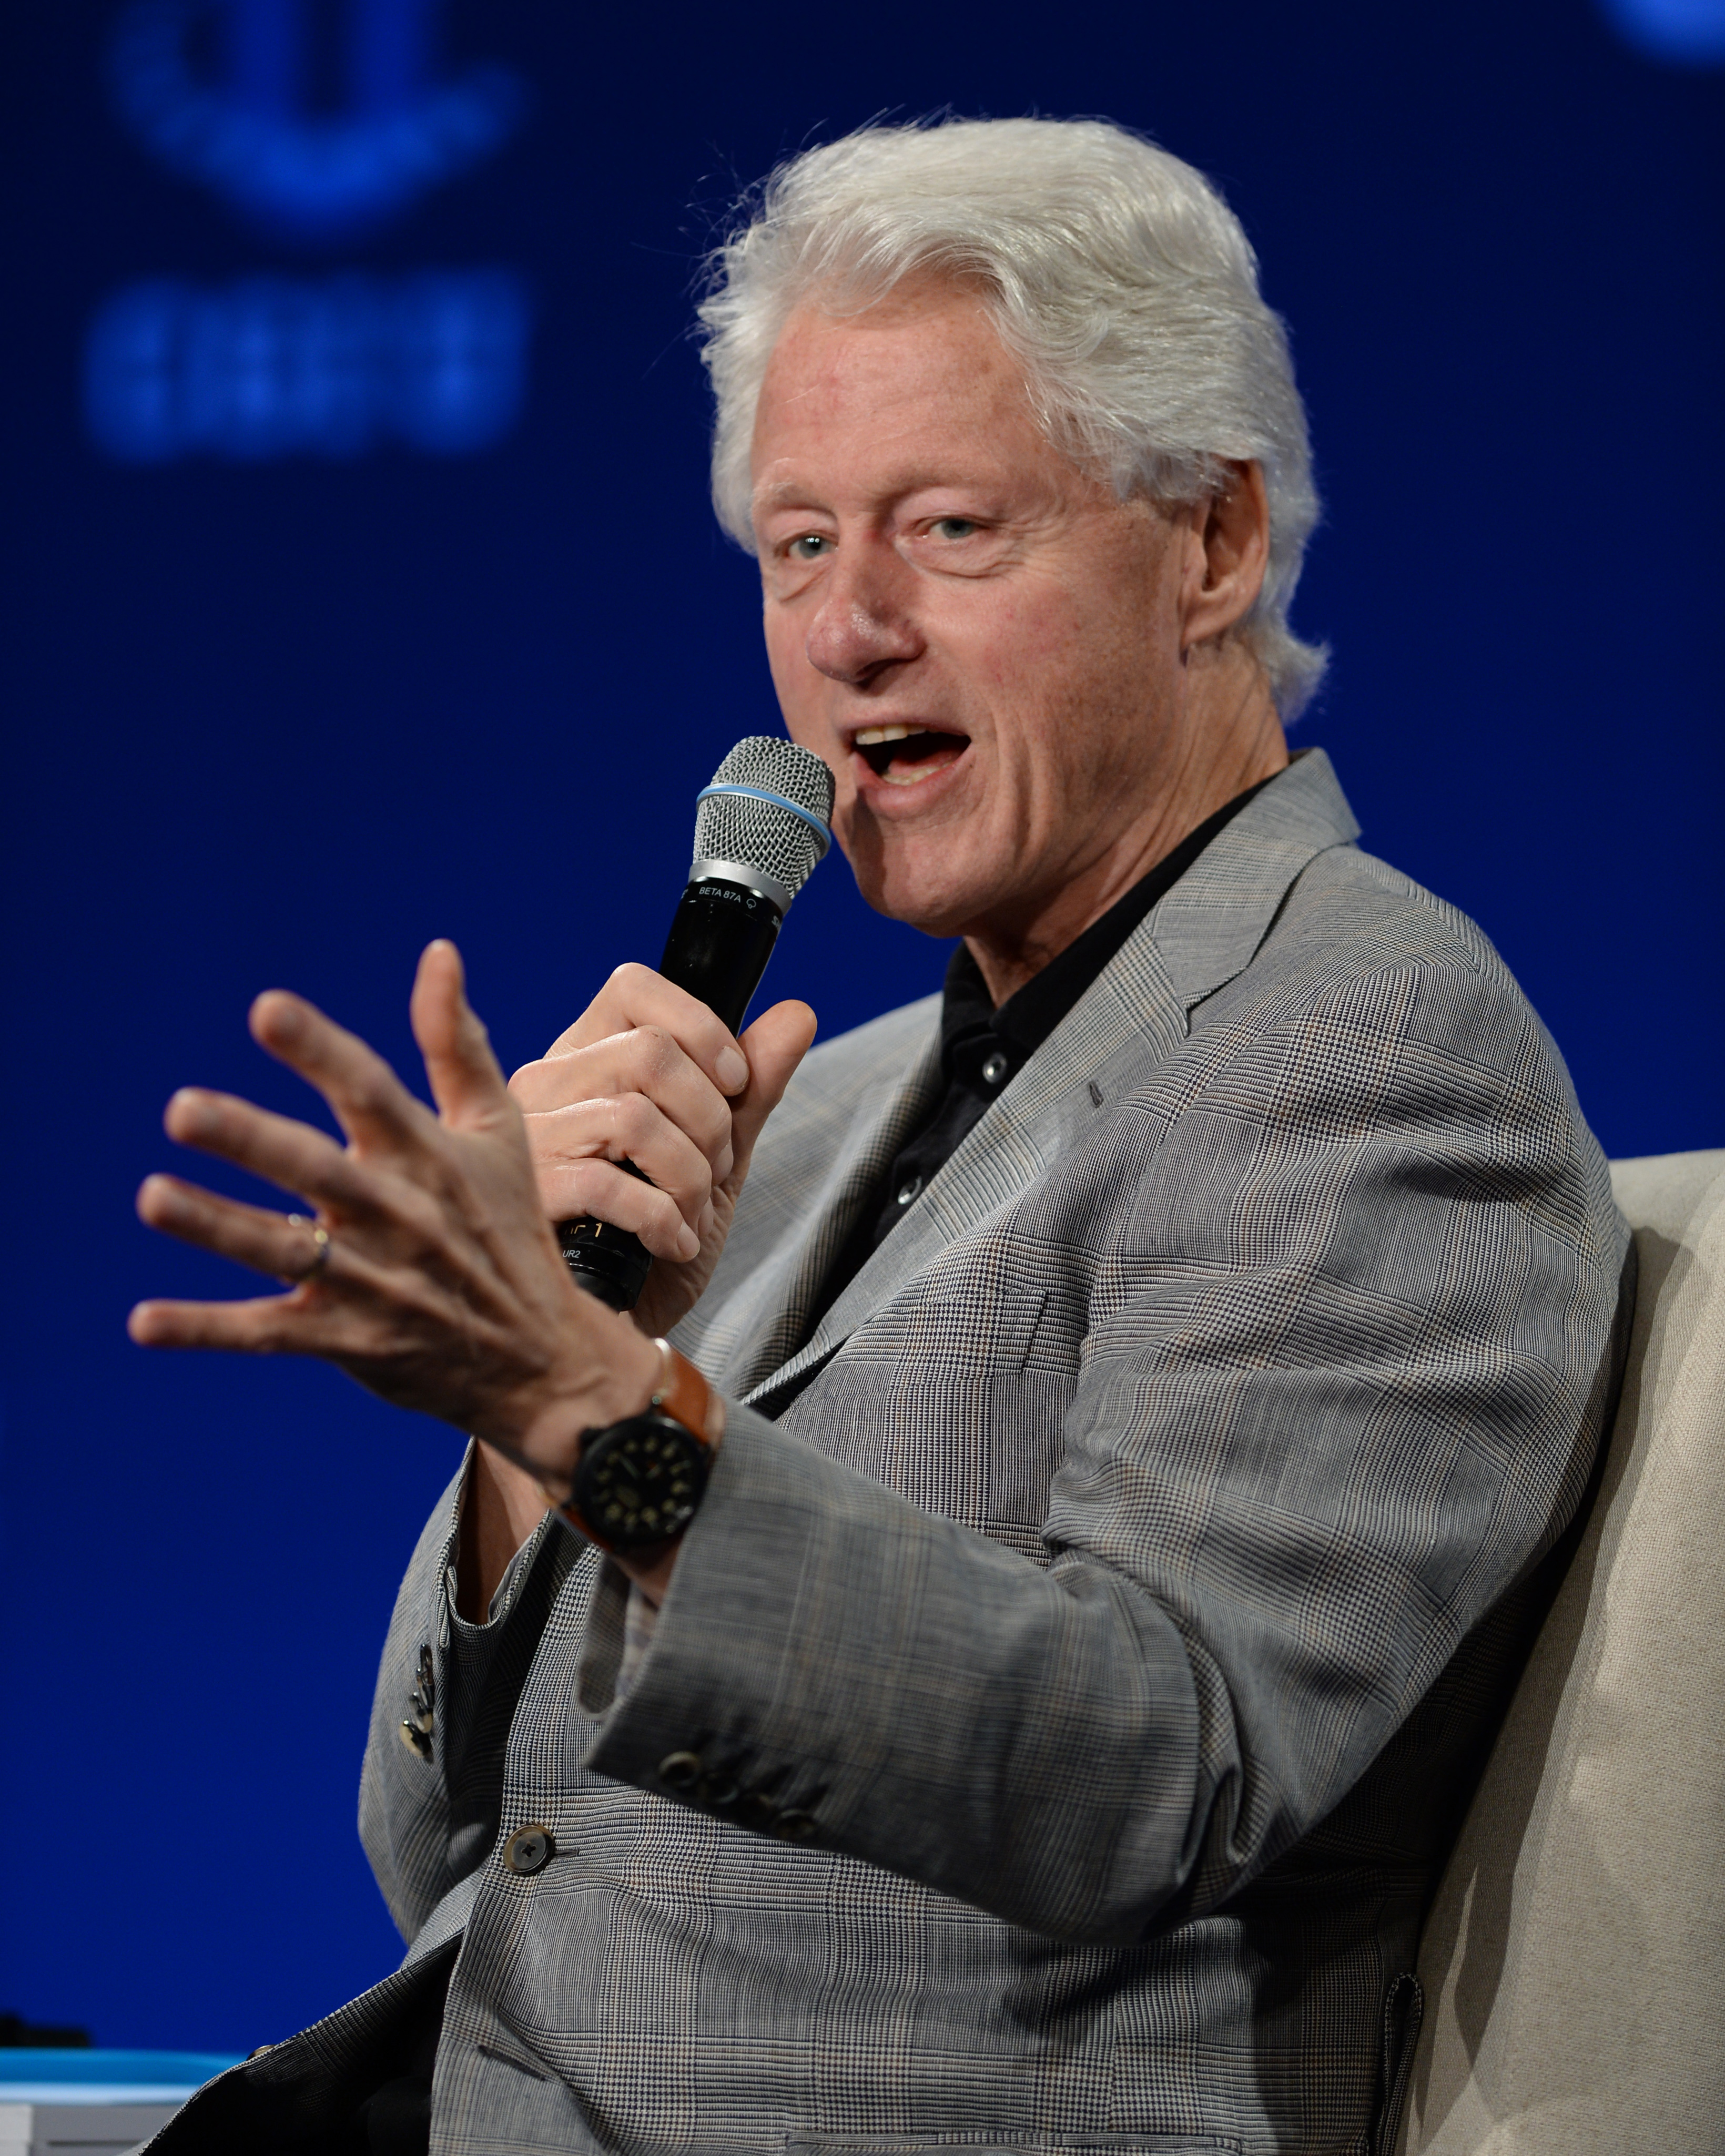 Former US President Bill Clinton attends the Clinton Global Initiative University at University of Miami on March 7, 2015 in Miami, Florida.